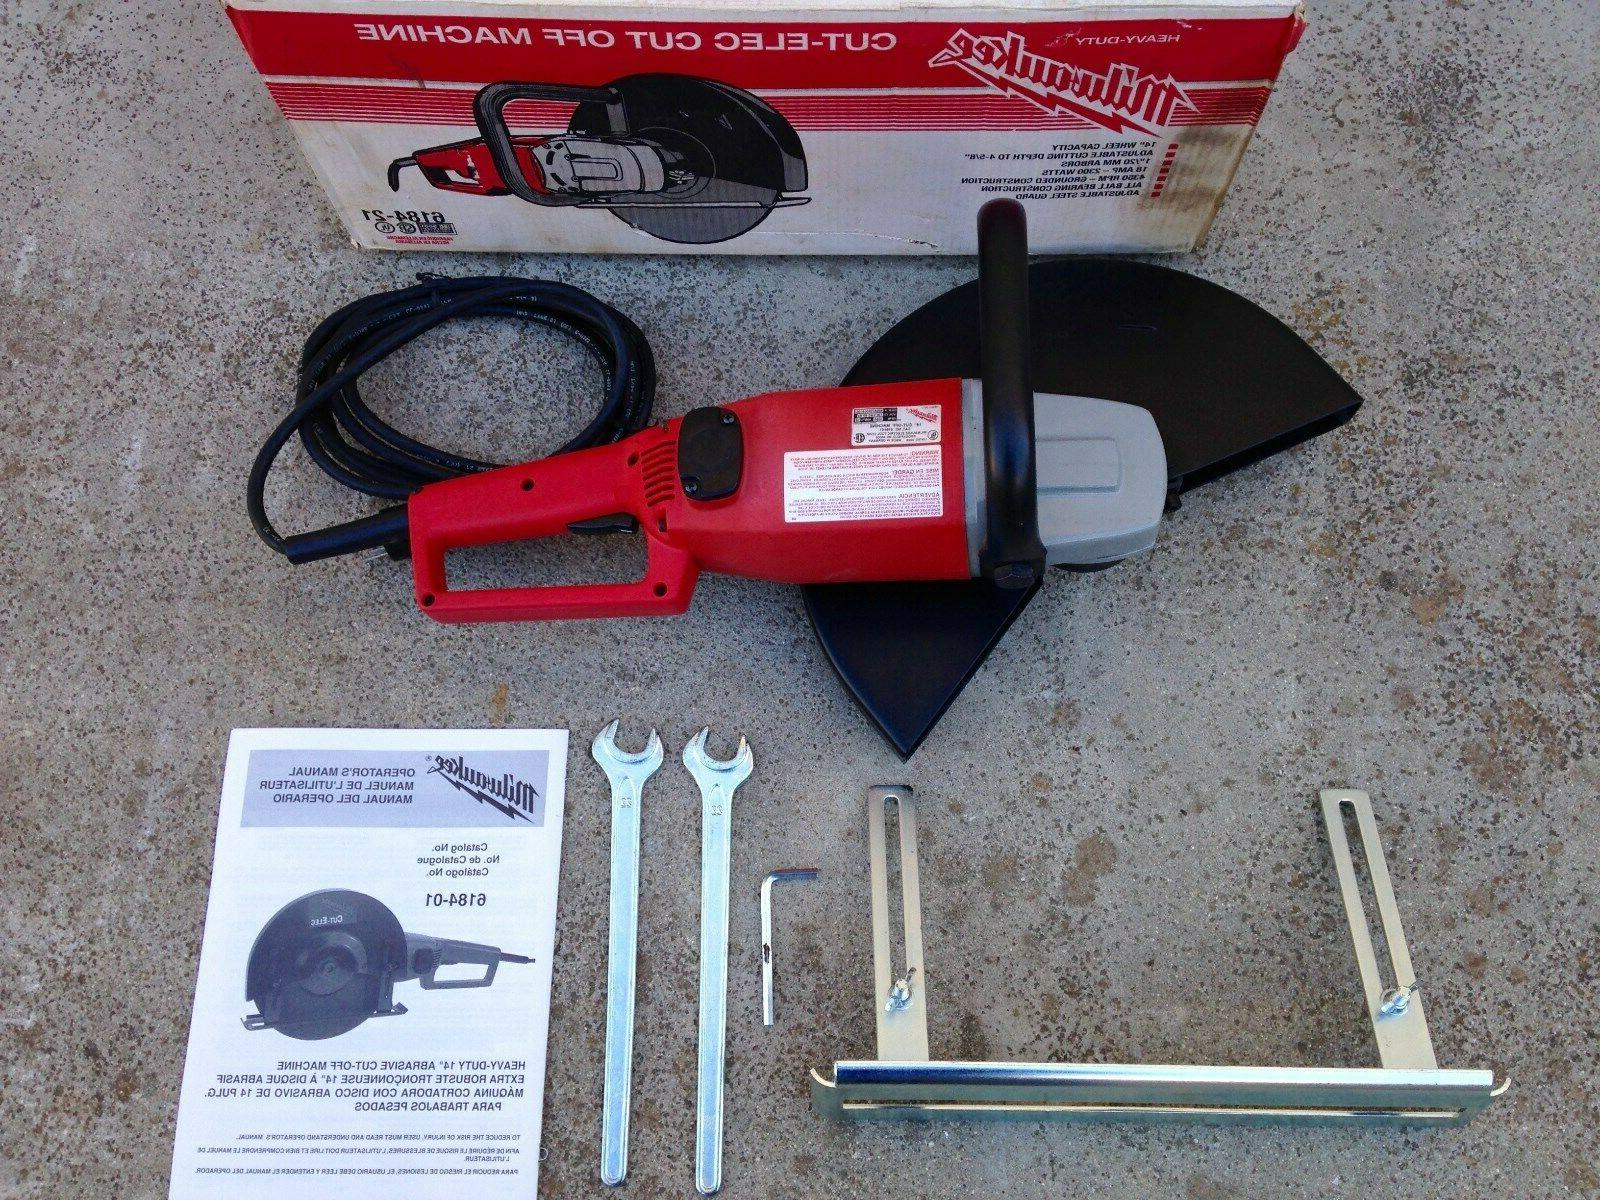 6184 14 electric hand held cut off